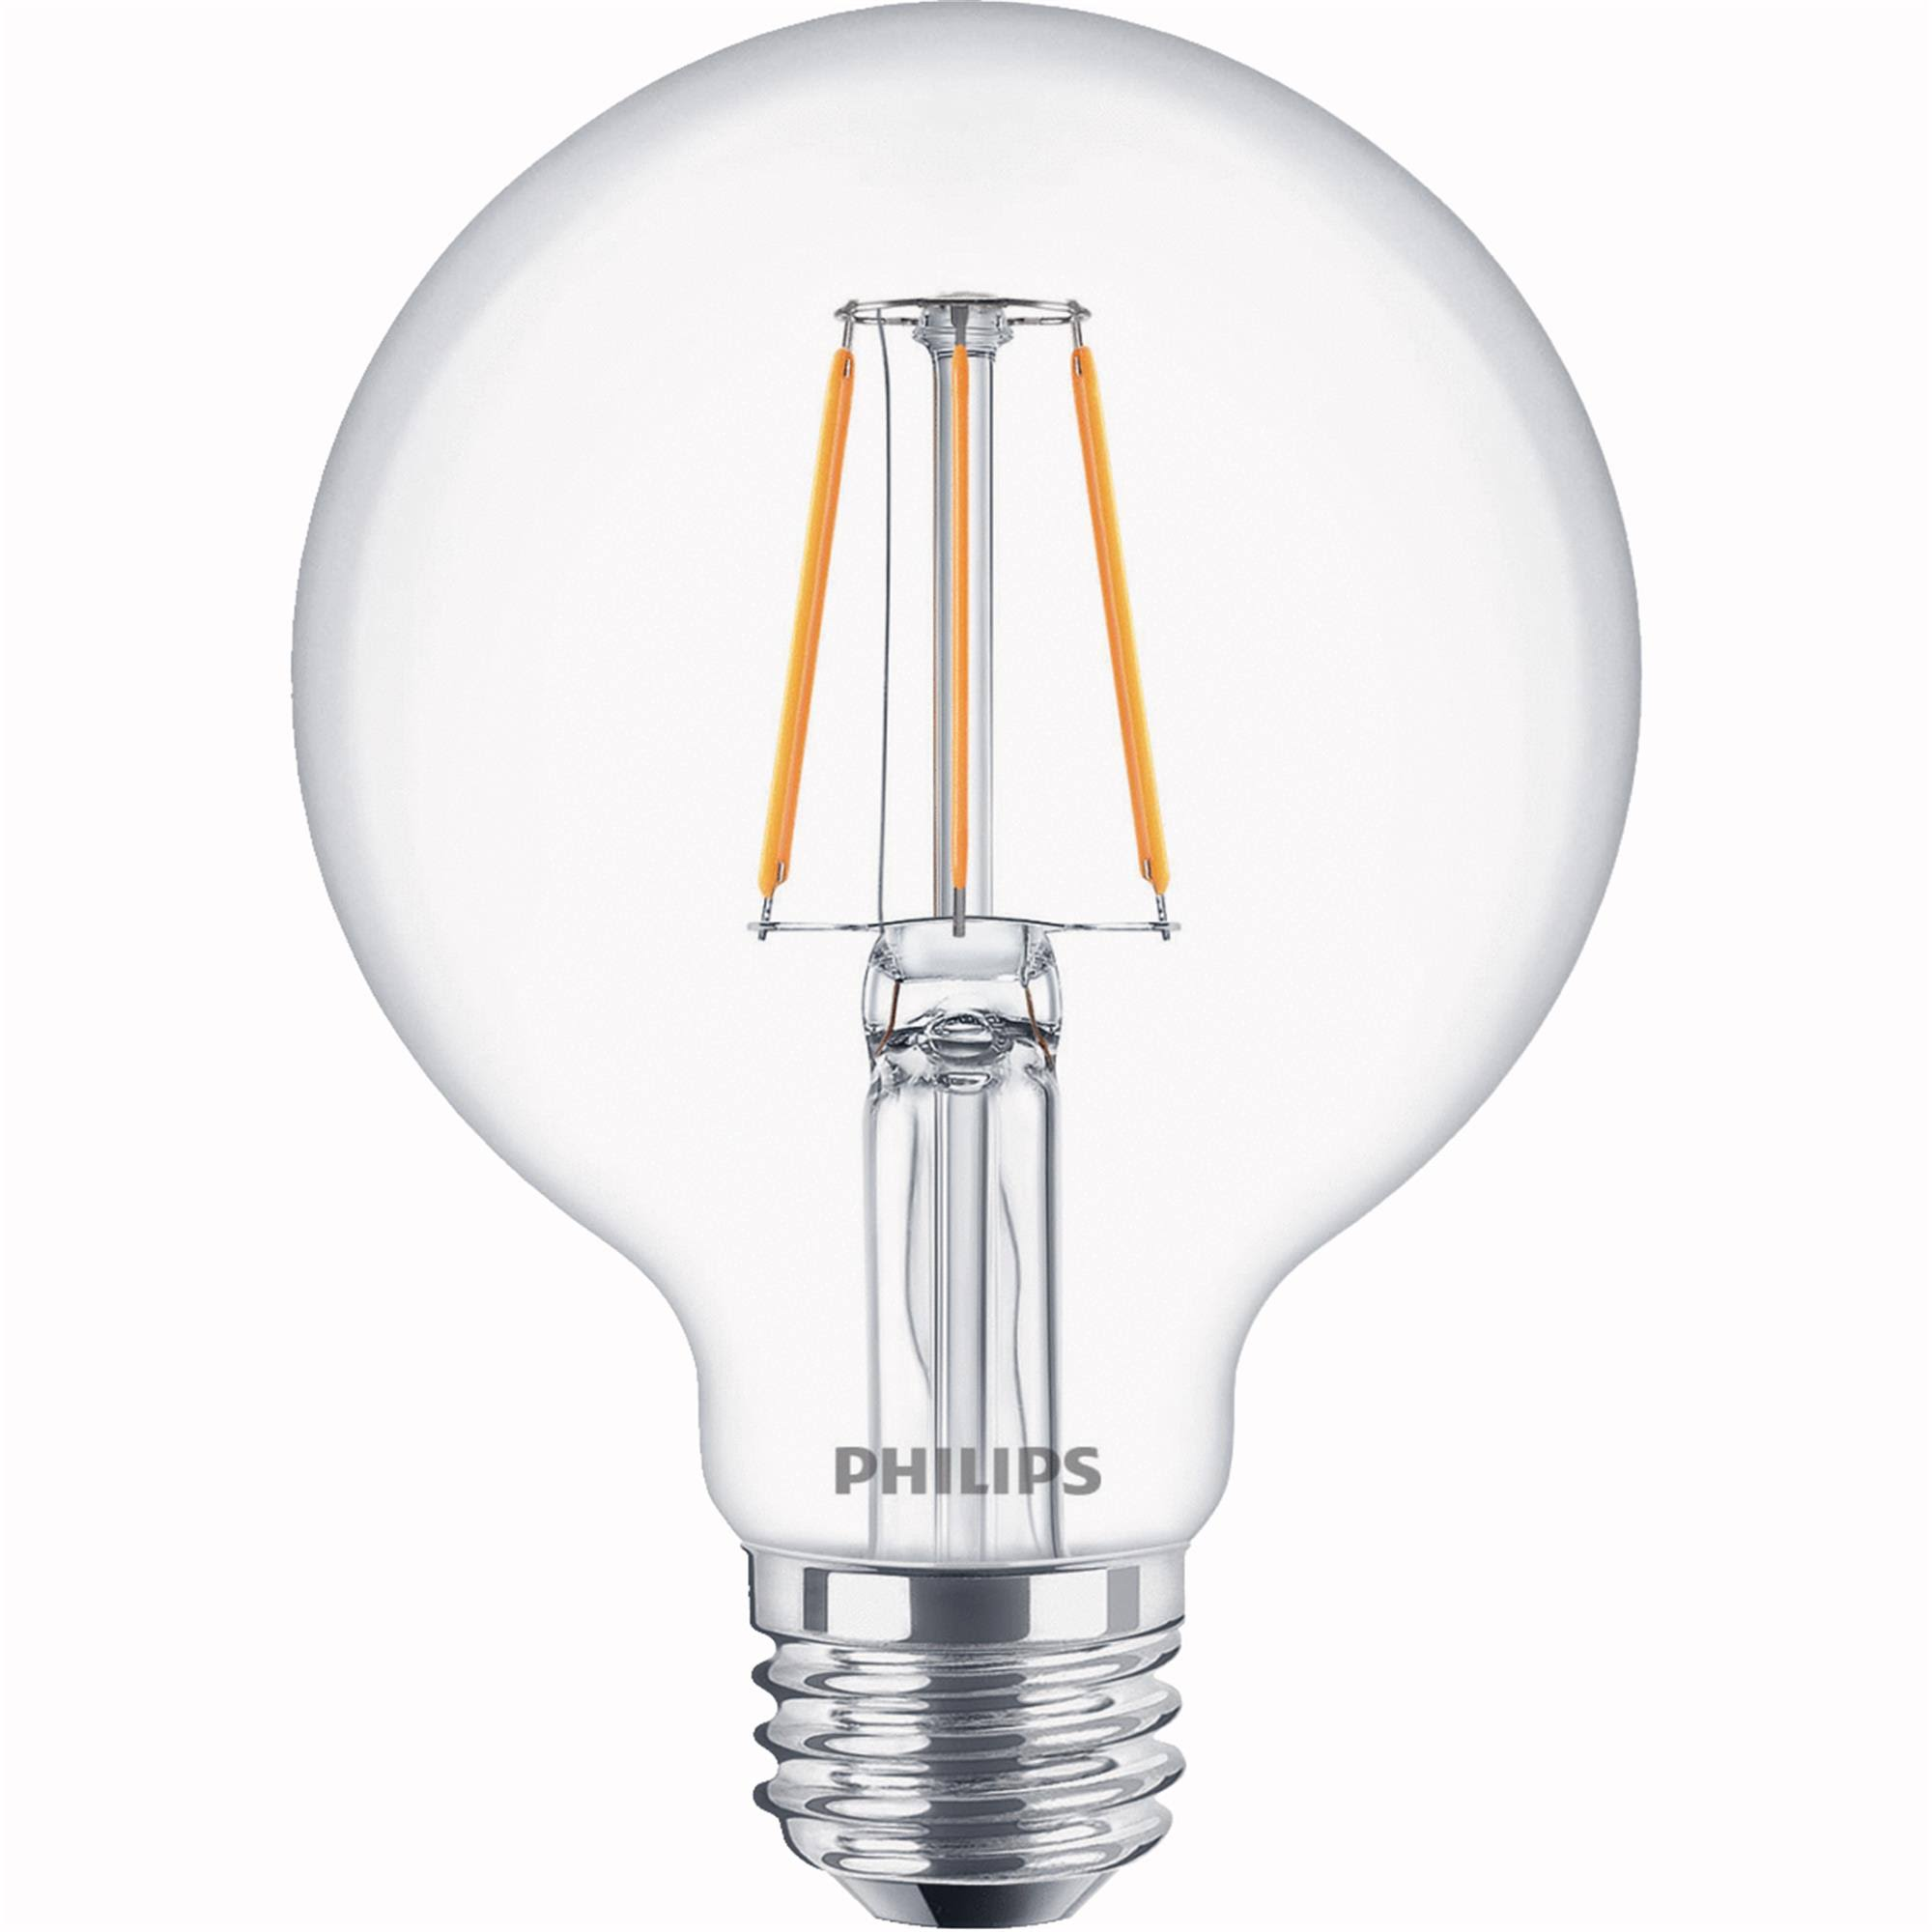 Philips Warm Glow All Glass G25 Medium Dimmable LED Decorative Globe Light Bulb 536950